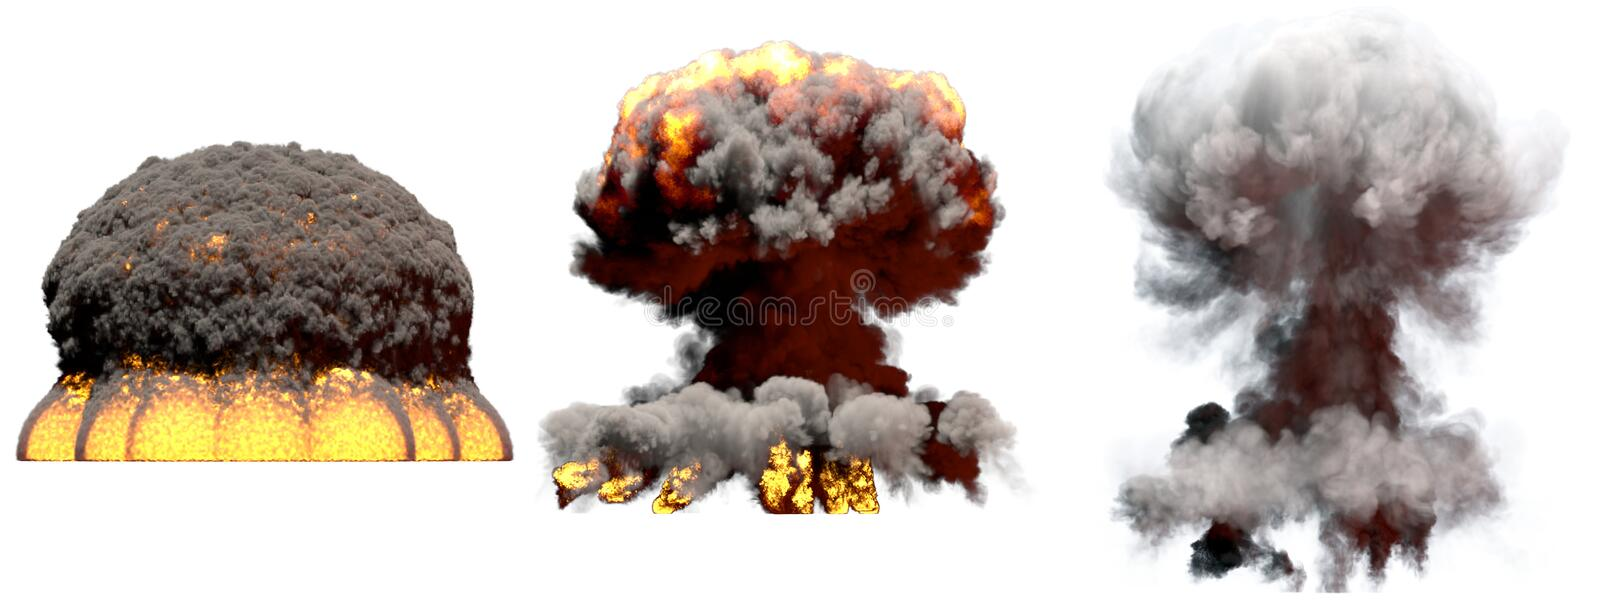 3D illustration of explosion - 3 huge different phases fire mushroom cloud explosion of nuclear bomb with smoke and flame isolated. 3 big different phases fire royalty free illustration